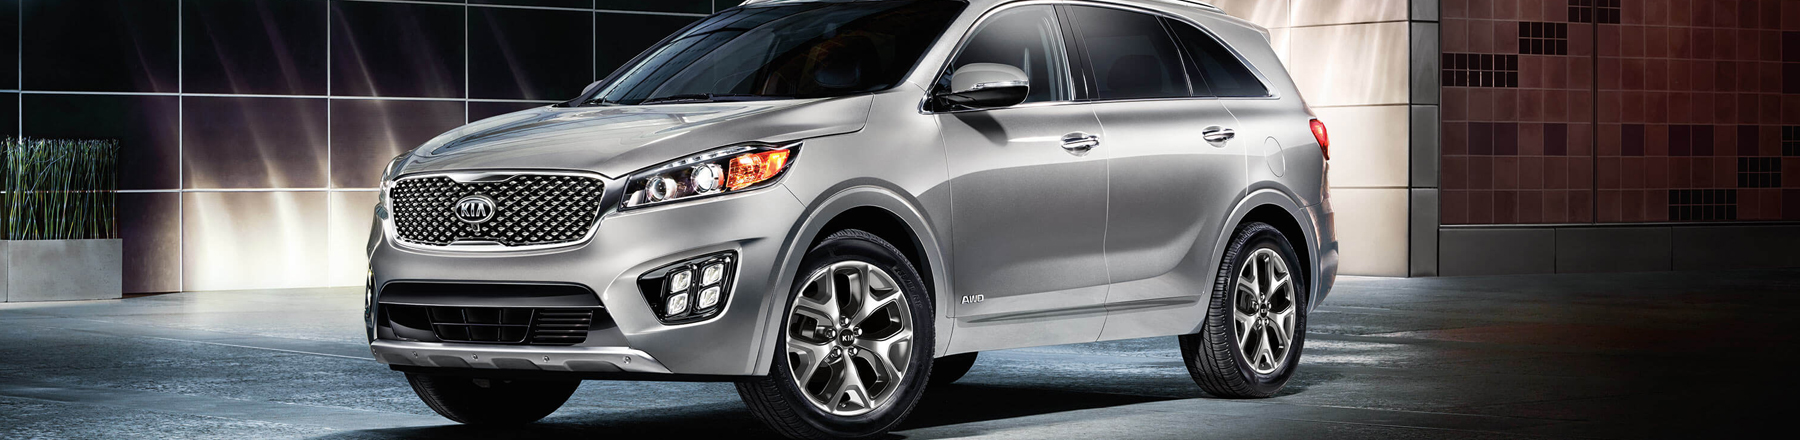 Kia Finance Bad Credit >> Get Auto Financing In Kamloops With Bad Credit On All Our